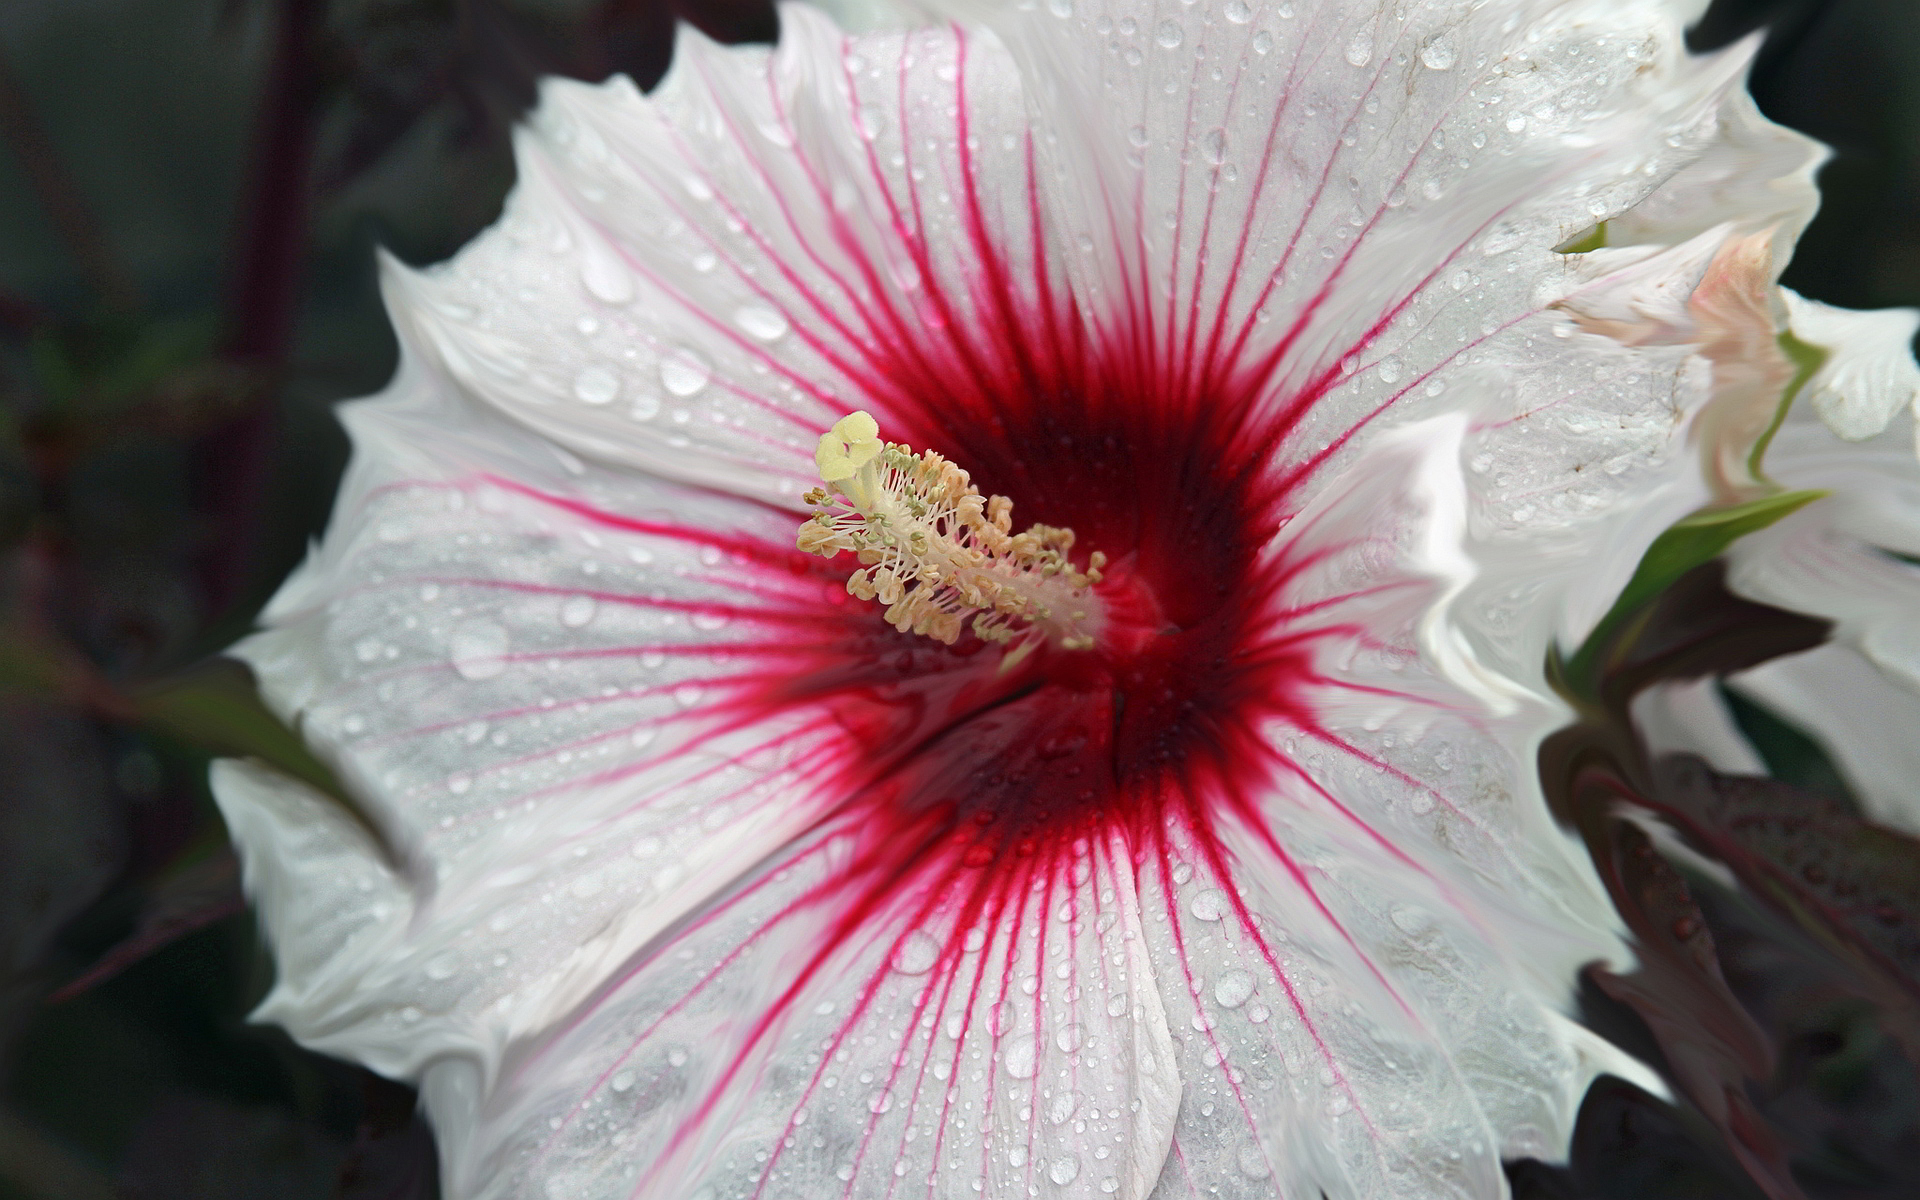 Cool Nature Wallpapers 3d White Hibiscus Hd Desktop Wallpapers 4k Hd